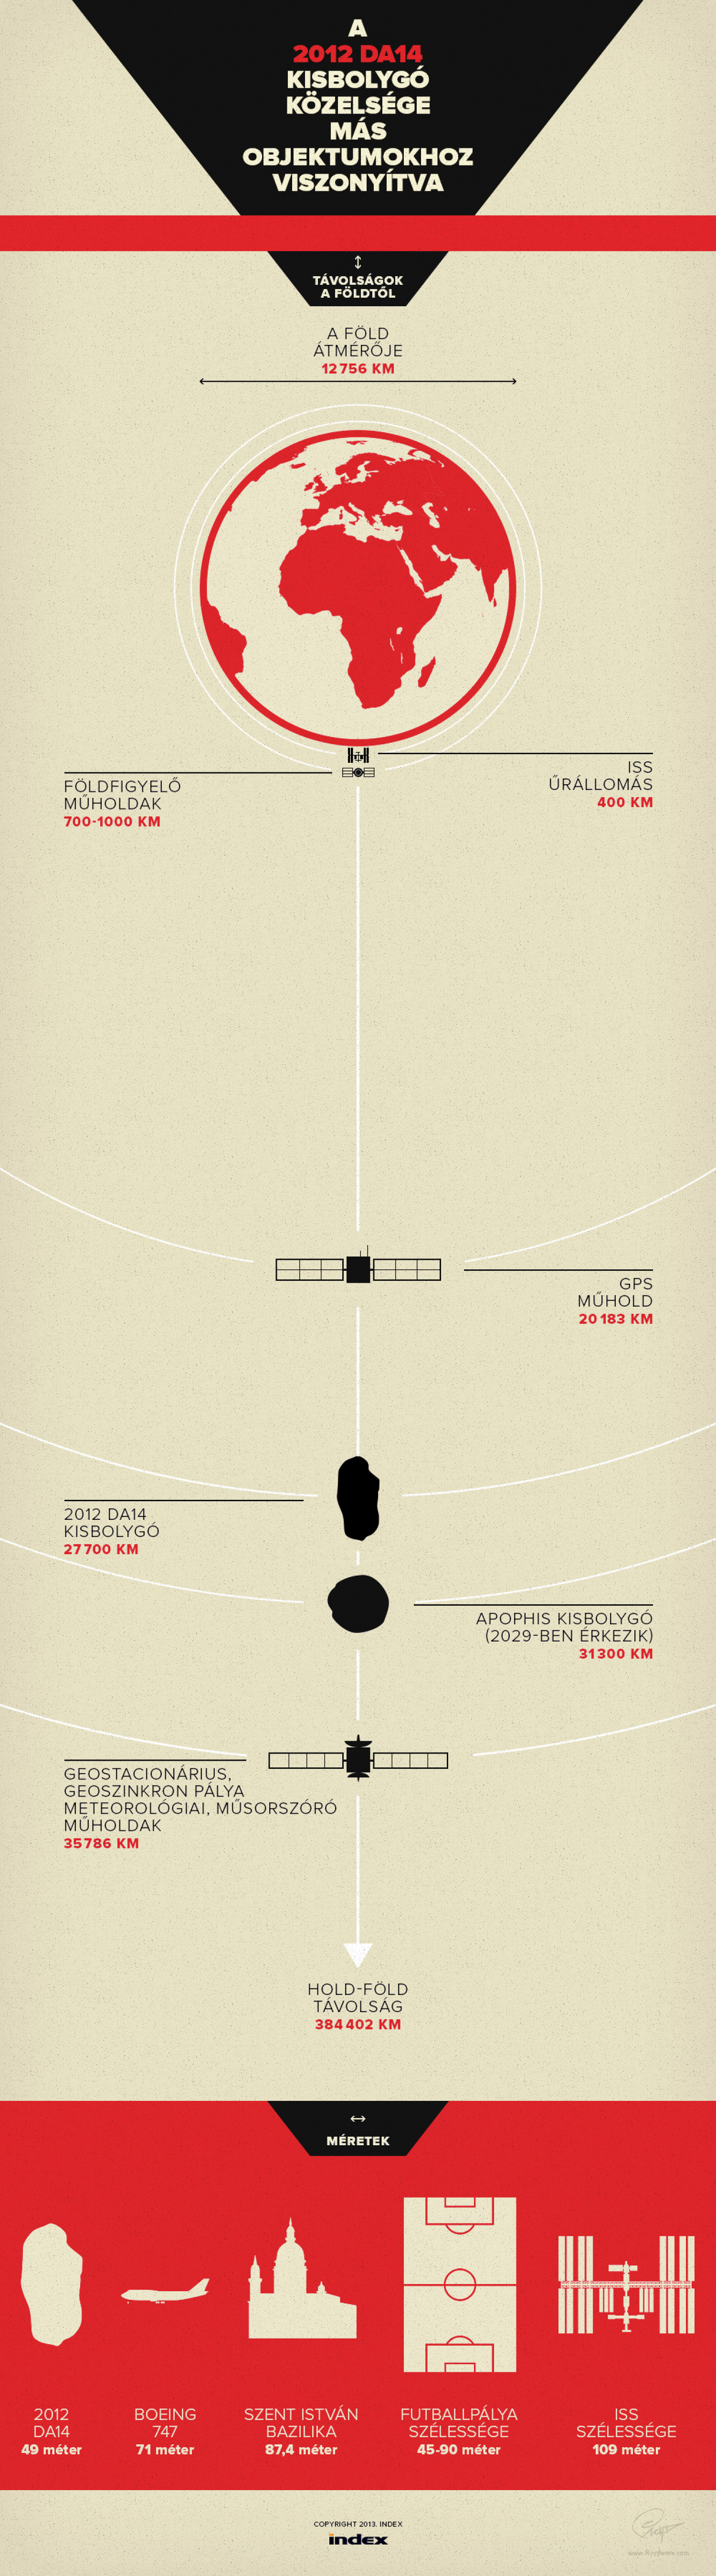 2012 DA14 asteroid approaching Earth - infographic Infographic